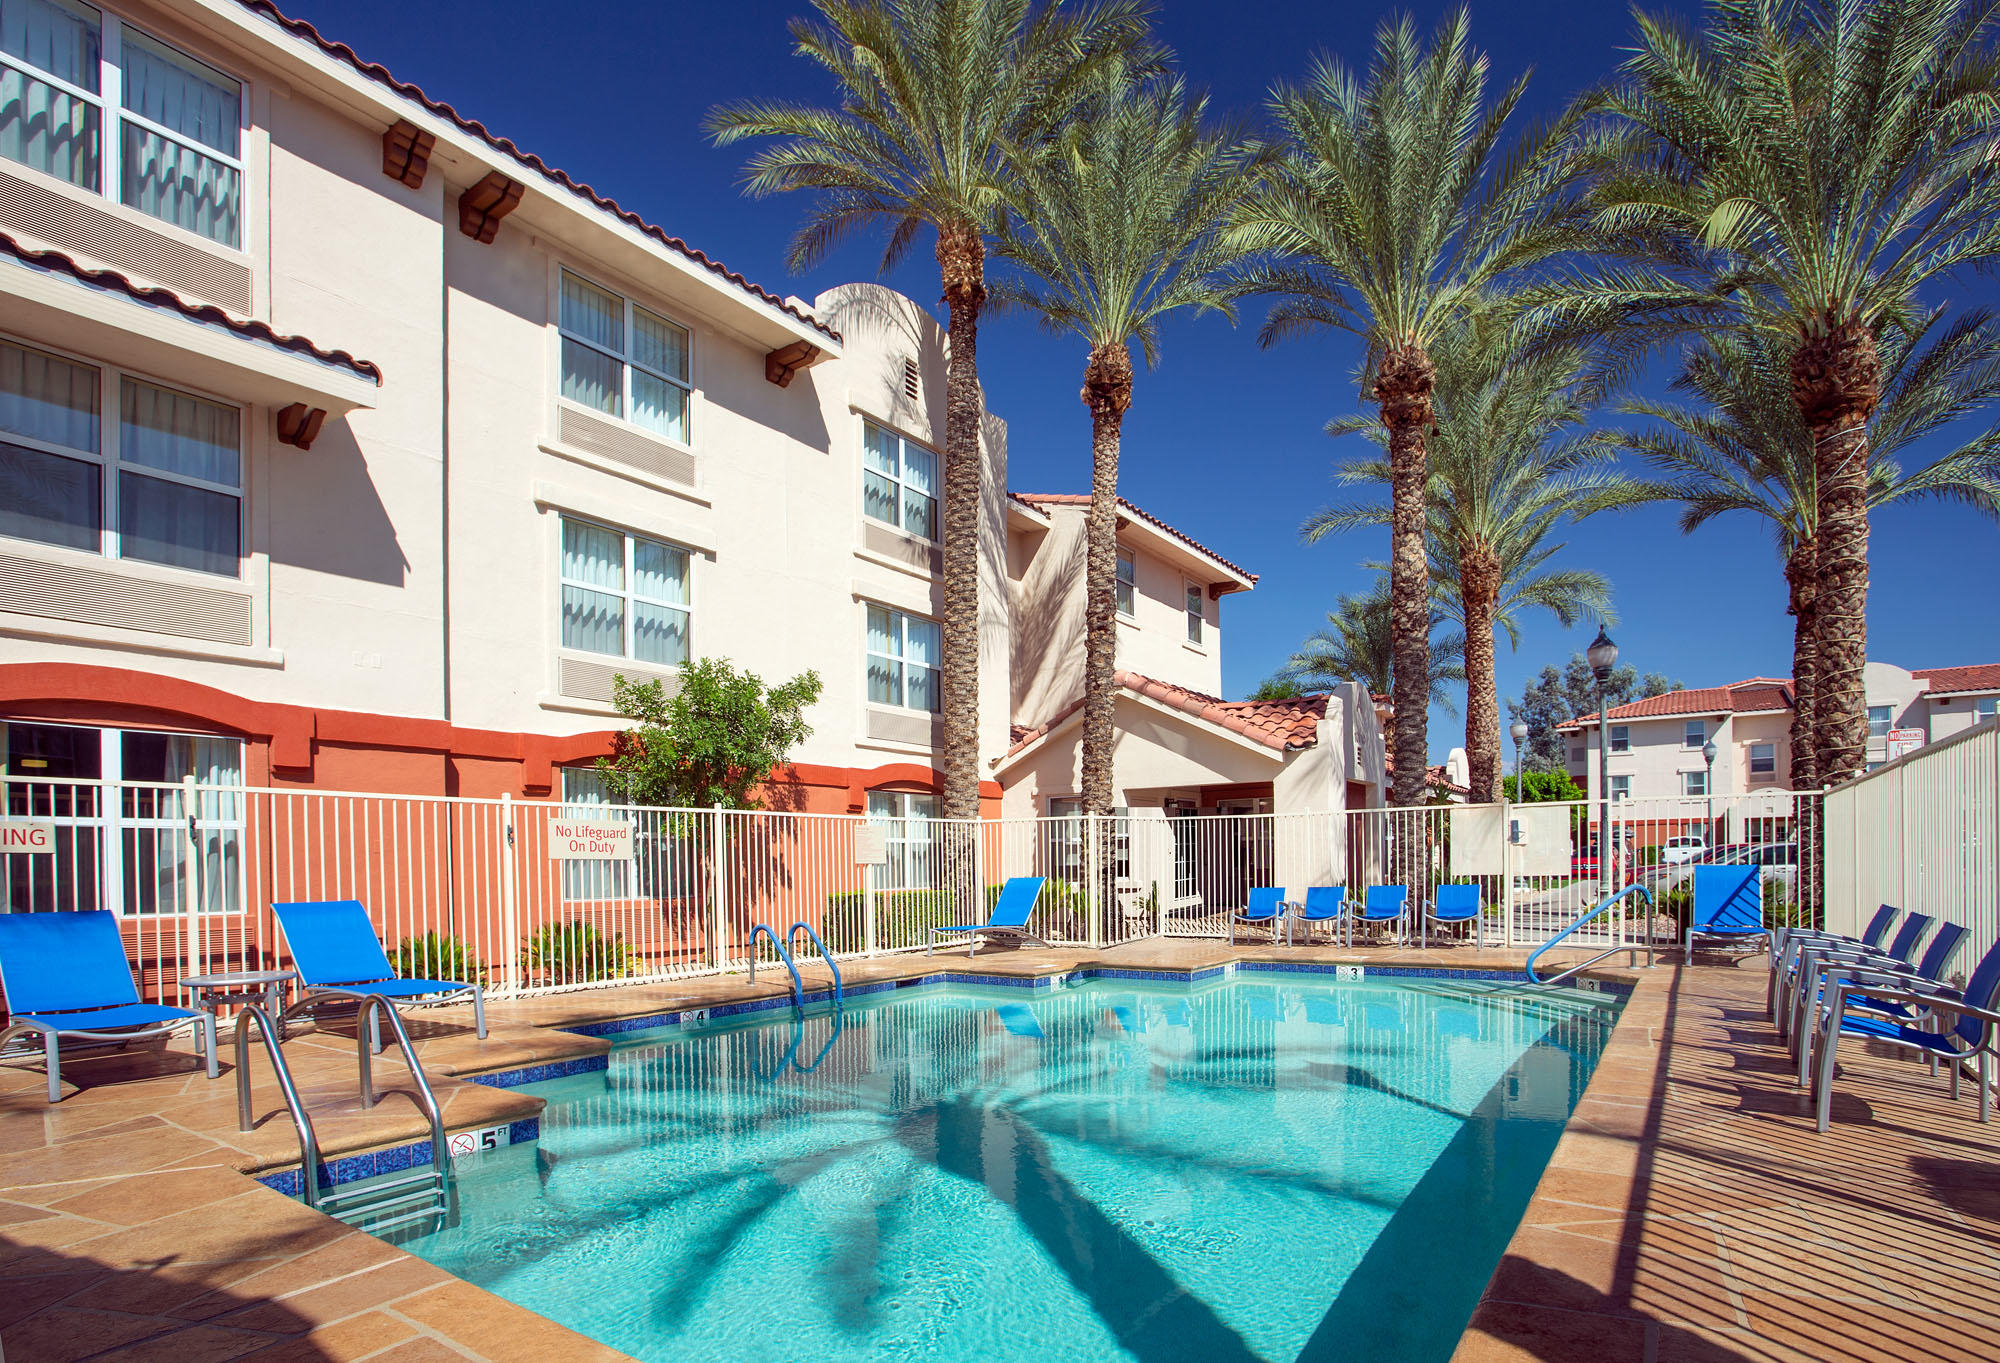 TownePlace Suites by Marriott Scottsdale image 9